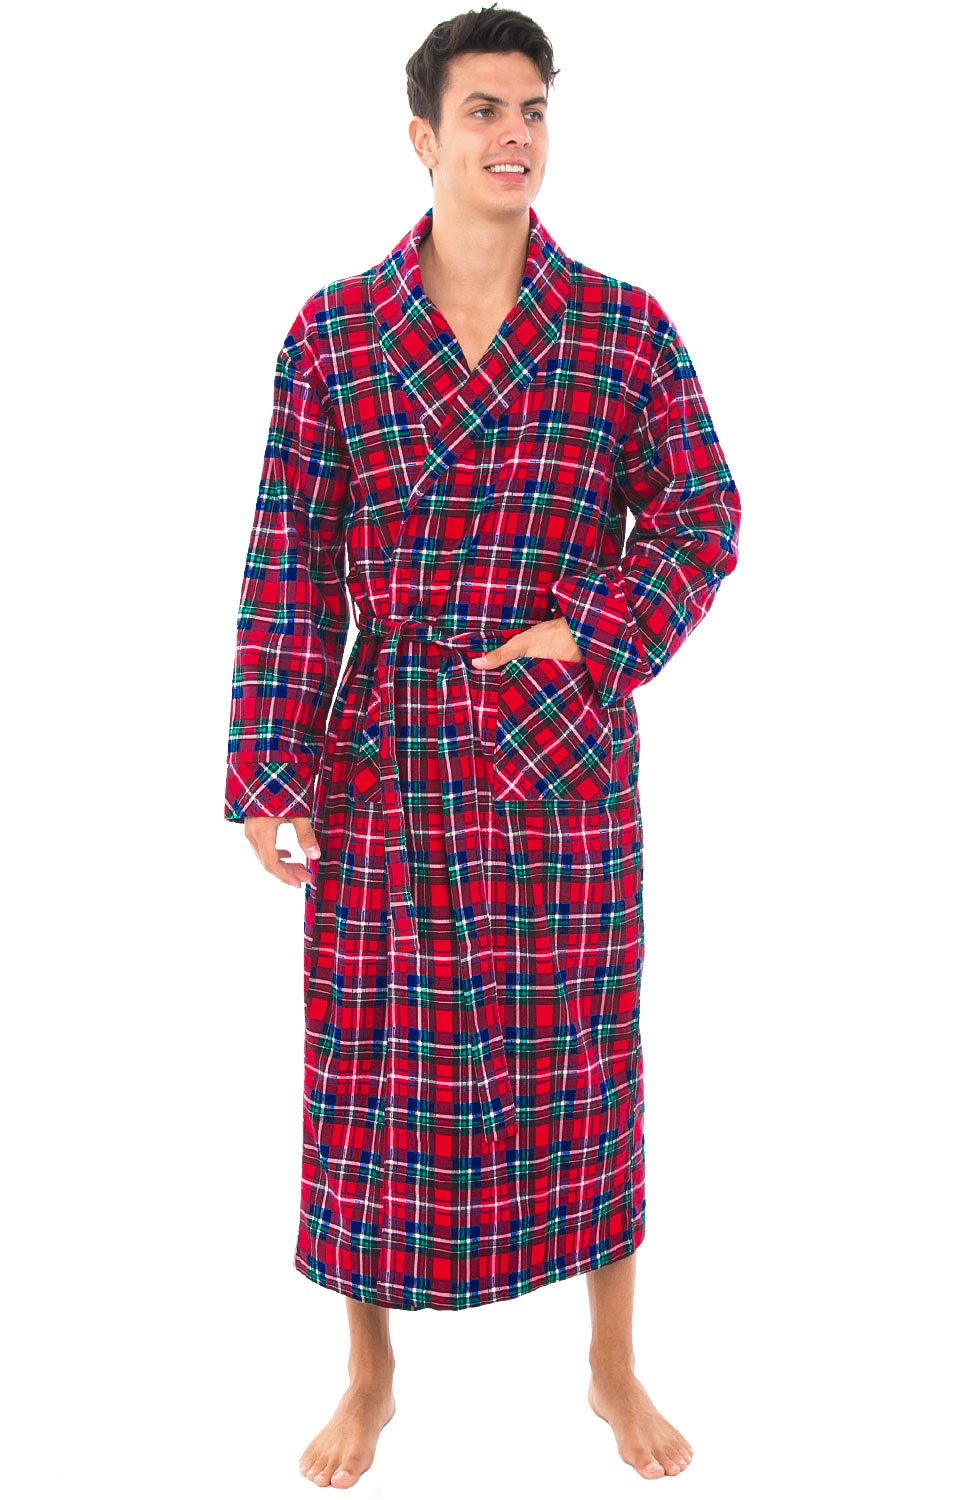 Alexander Del Rossa Mens Flannel Robe, Soft Cotton Bathrobe, Large Blue Red and Green Plaid (A0707Q19LG)